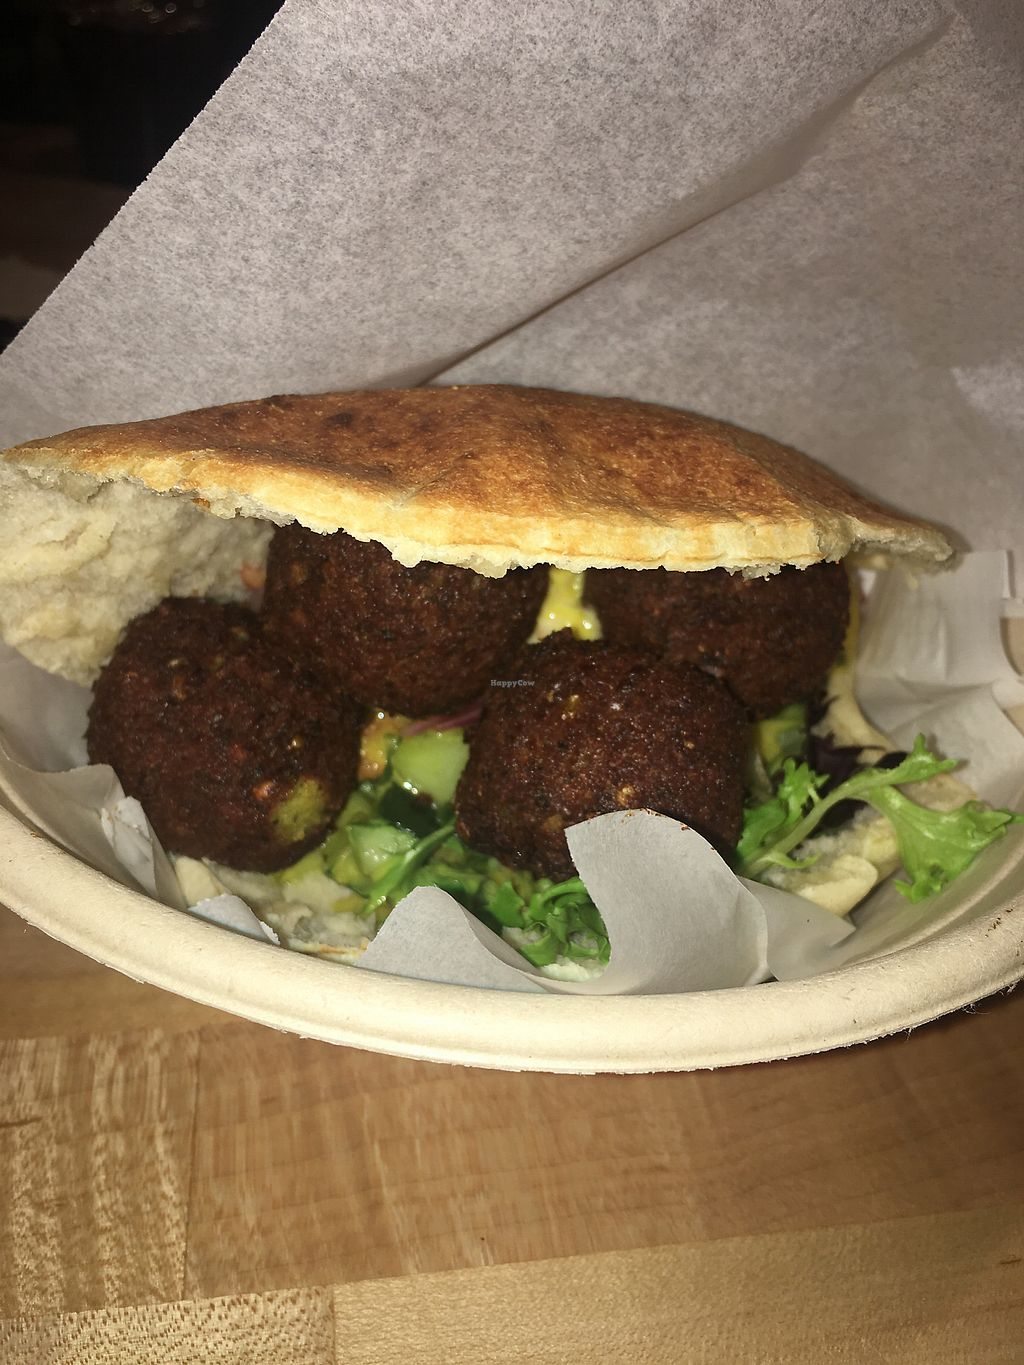 "Photo of Noon Mediterranean  by <a href=""/members/profile/SandyBarros"">SandyBarros</a> <br/>Vegan pita with falafel and veggies <br/> November 28, 2017  - <a href='/contact/abuse/image/85789/330238'>Report</a>"